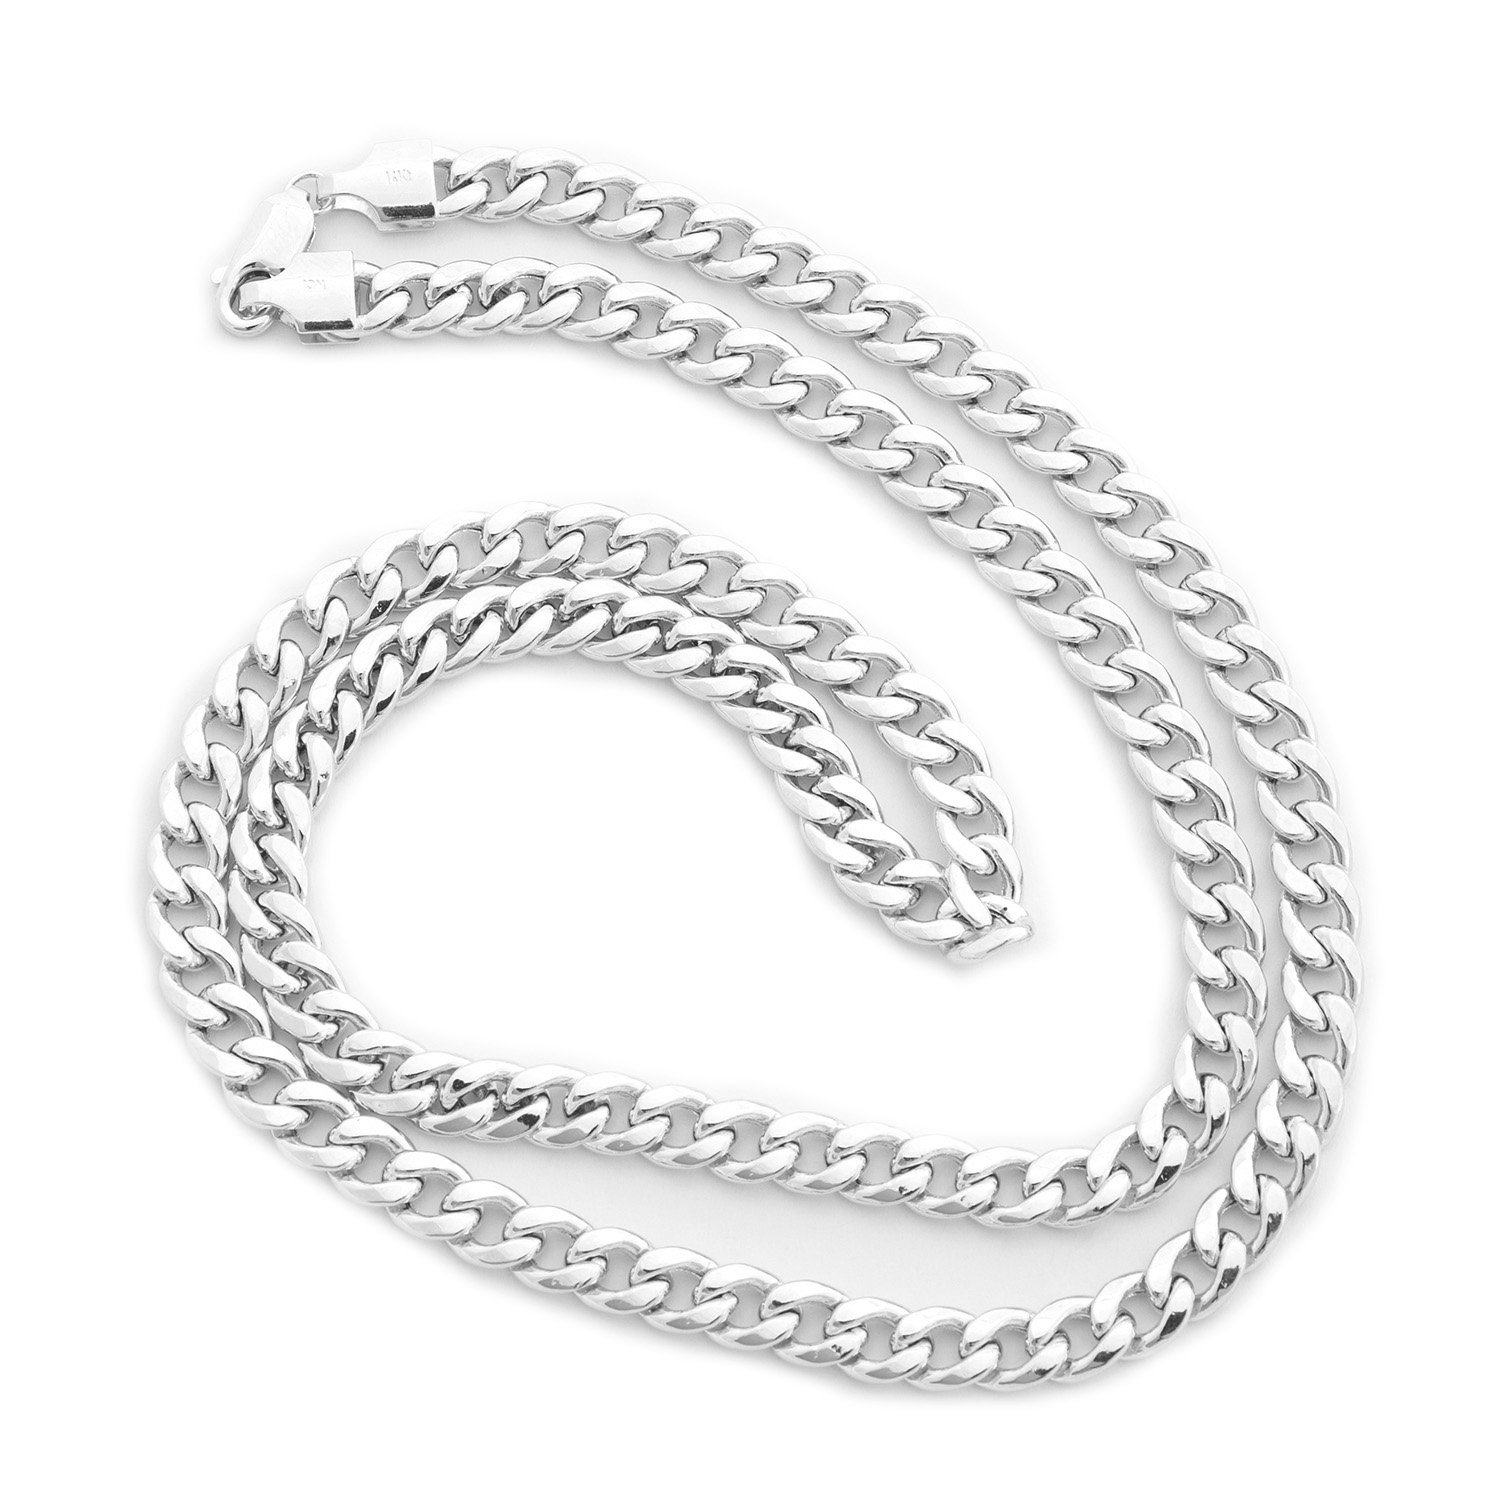 "Beauniq Men's Solid 14k Yellow or White Gold 4.5mm Heavy Miami Cuban Link Chain Necklace, 20"" 22"" 24"" by"